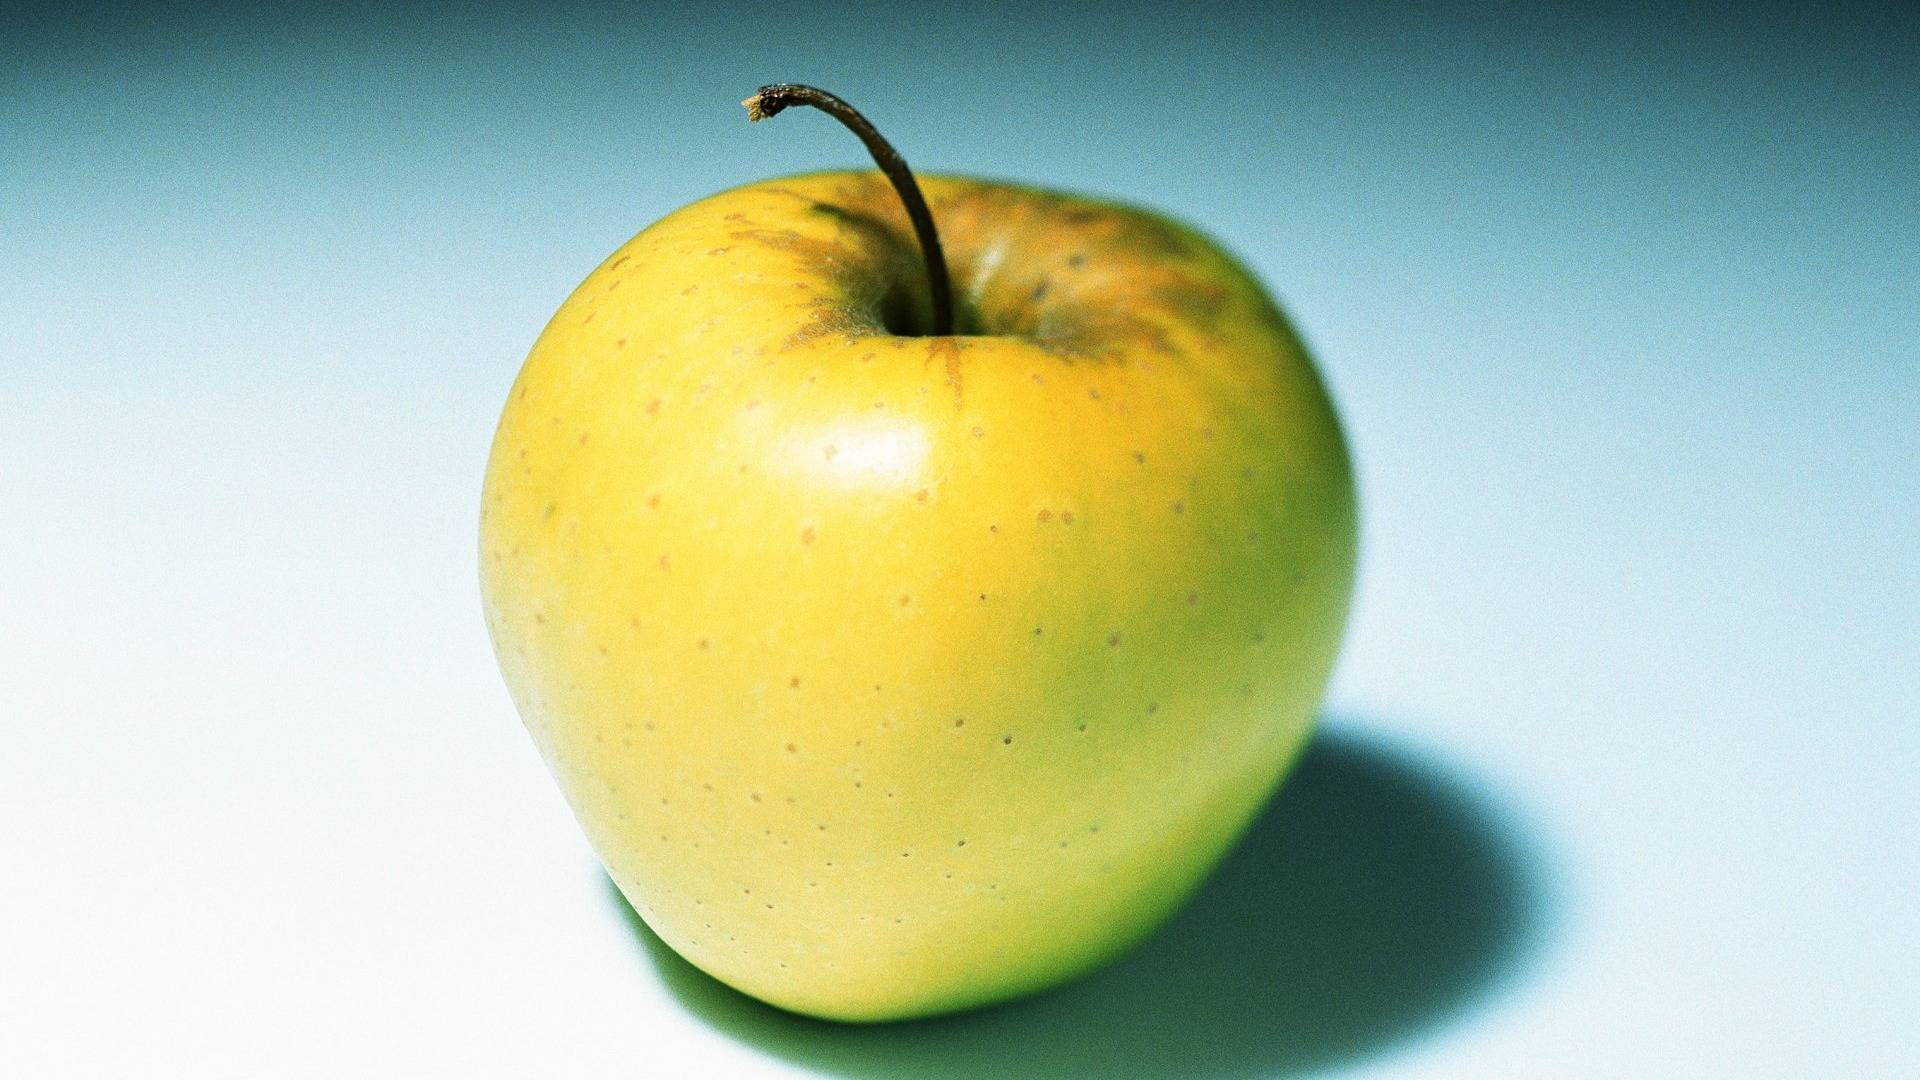 green apple Fruit Photography Golden Delicious apple 1920x1080